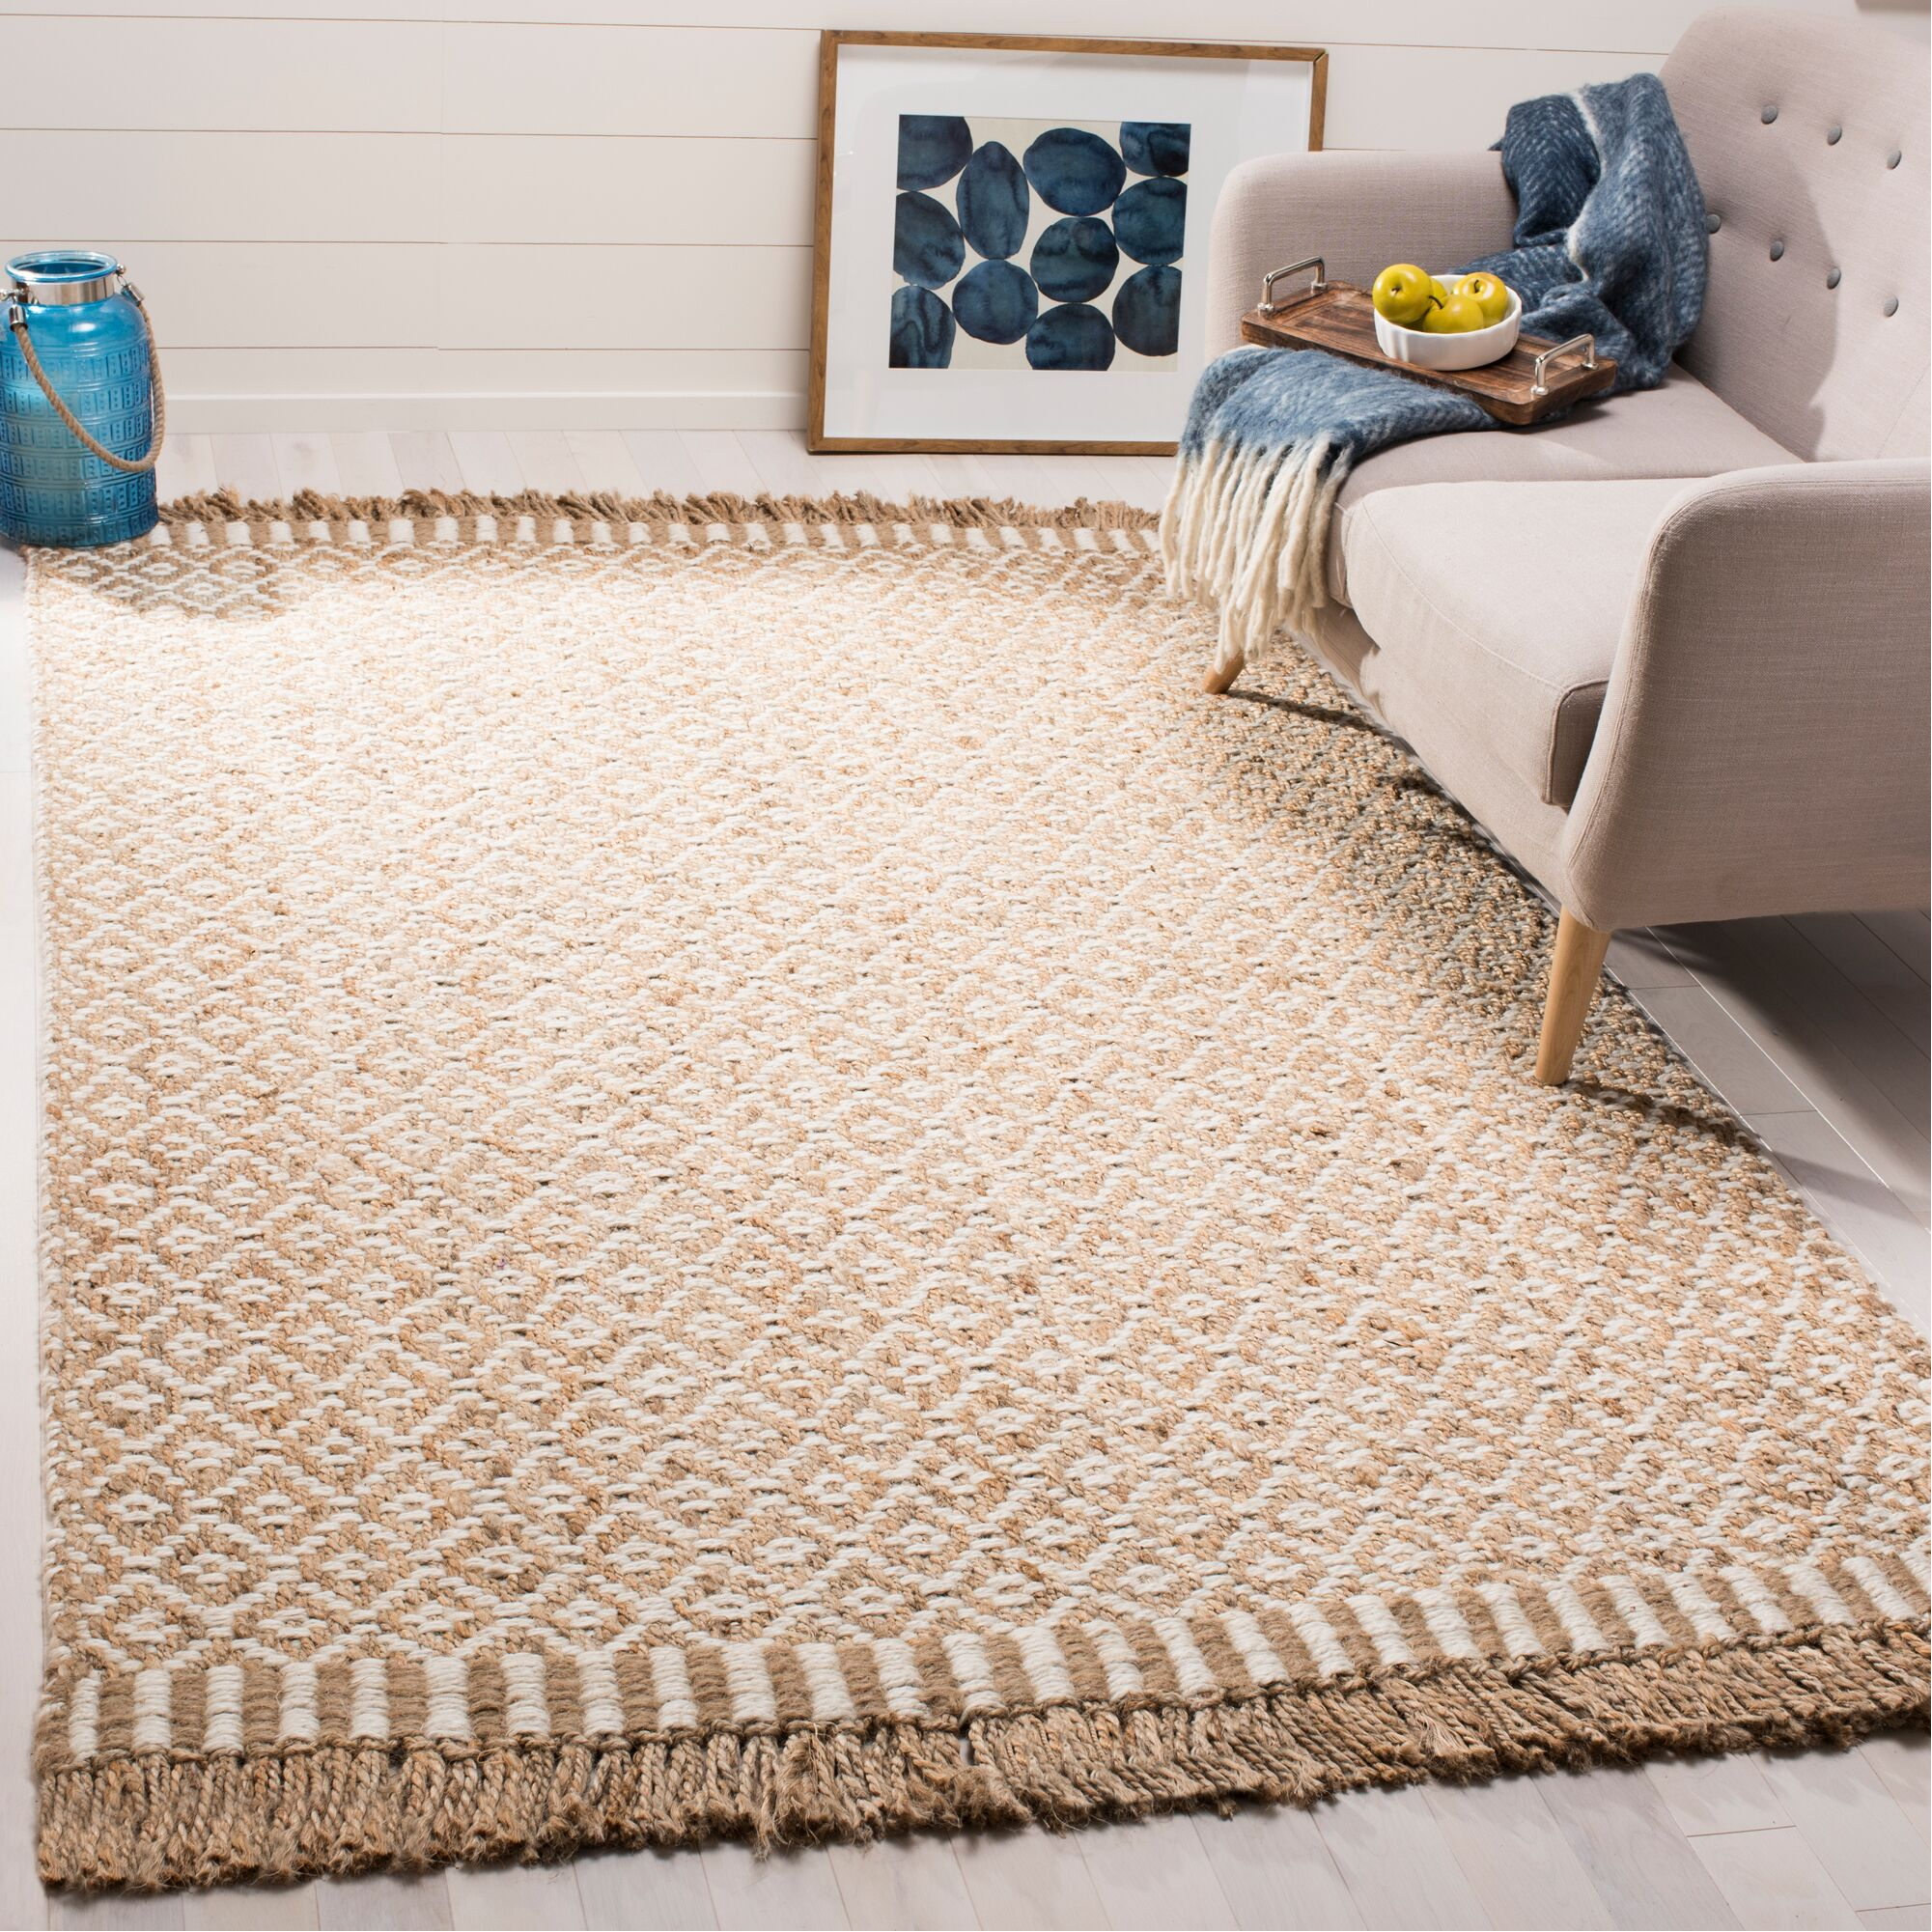 Nicholson Fiber Hand-Woven Natural/Ivory Area Rug Rug Size: Rectangle 5' x 8'